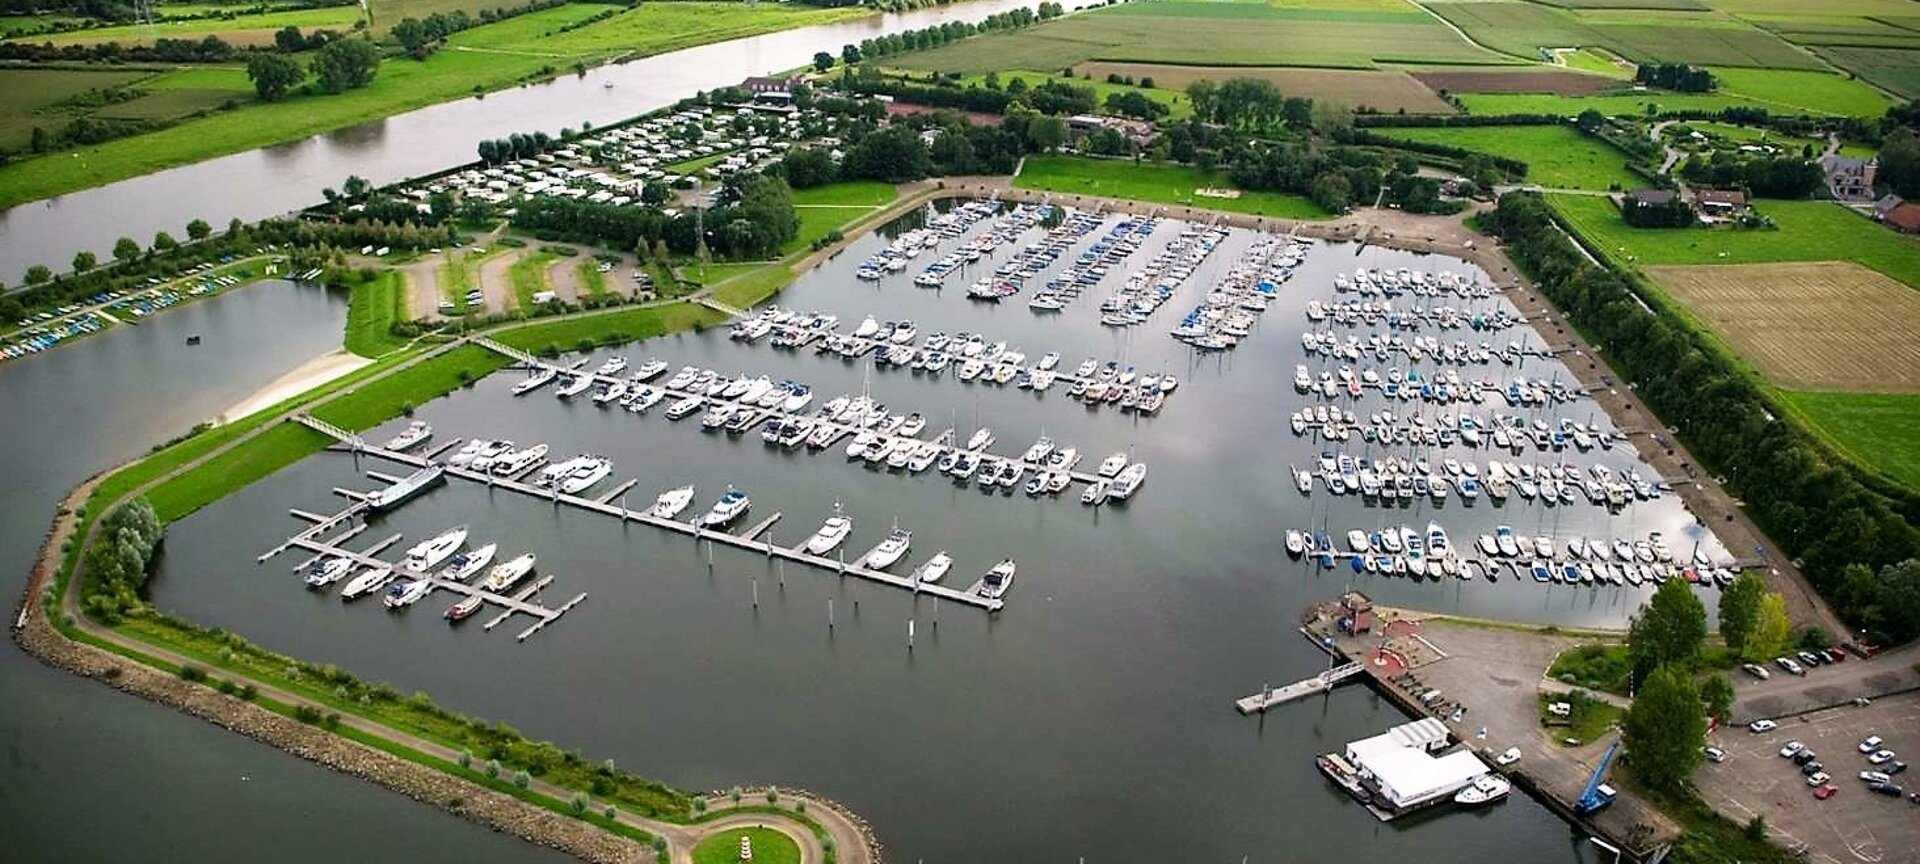 "Aqua Libra Yachtcharter - Sundown at our marina ""De Spaenjerd"" in Kinrooi"